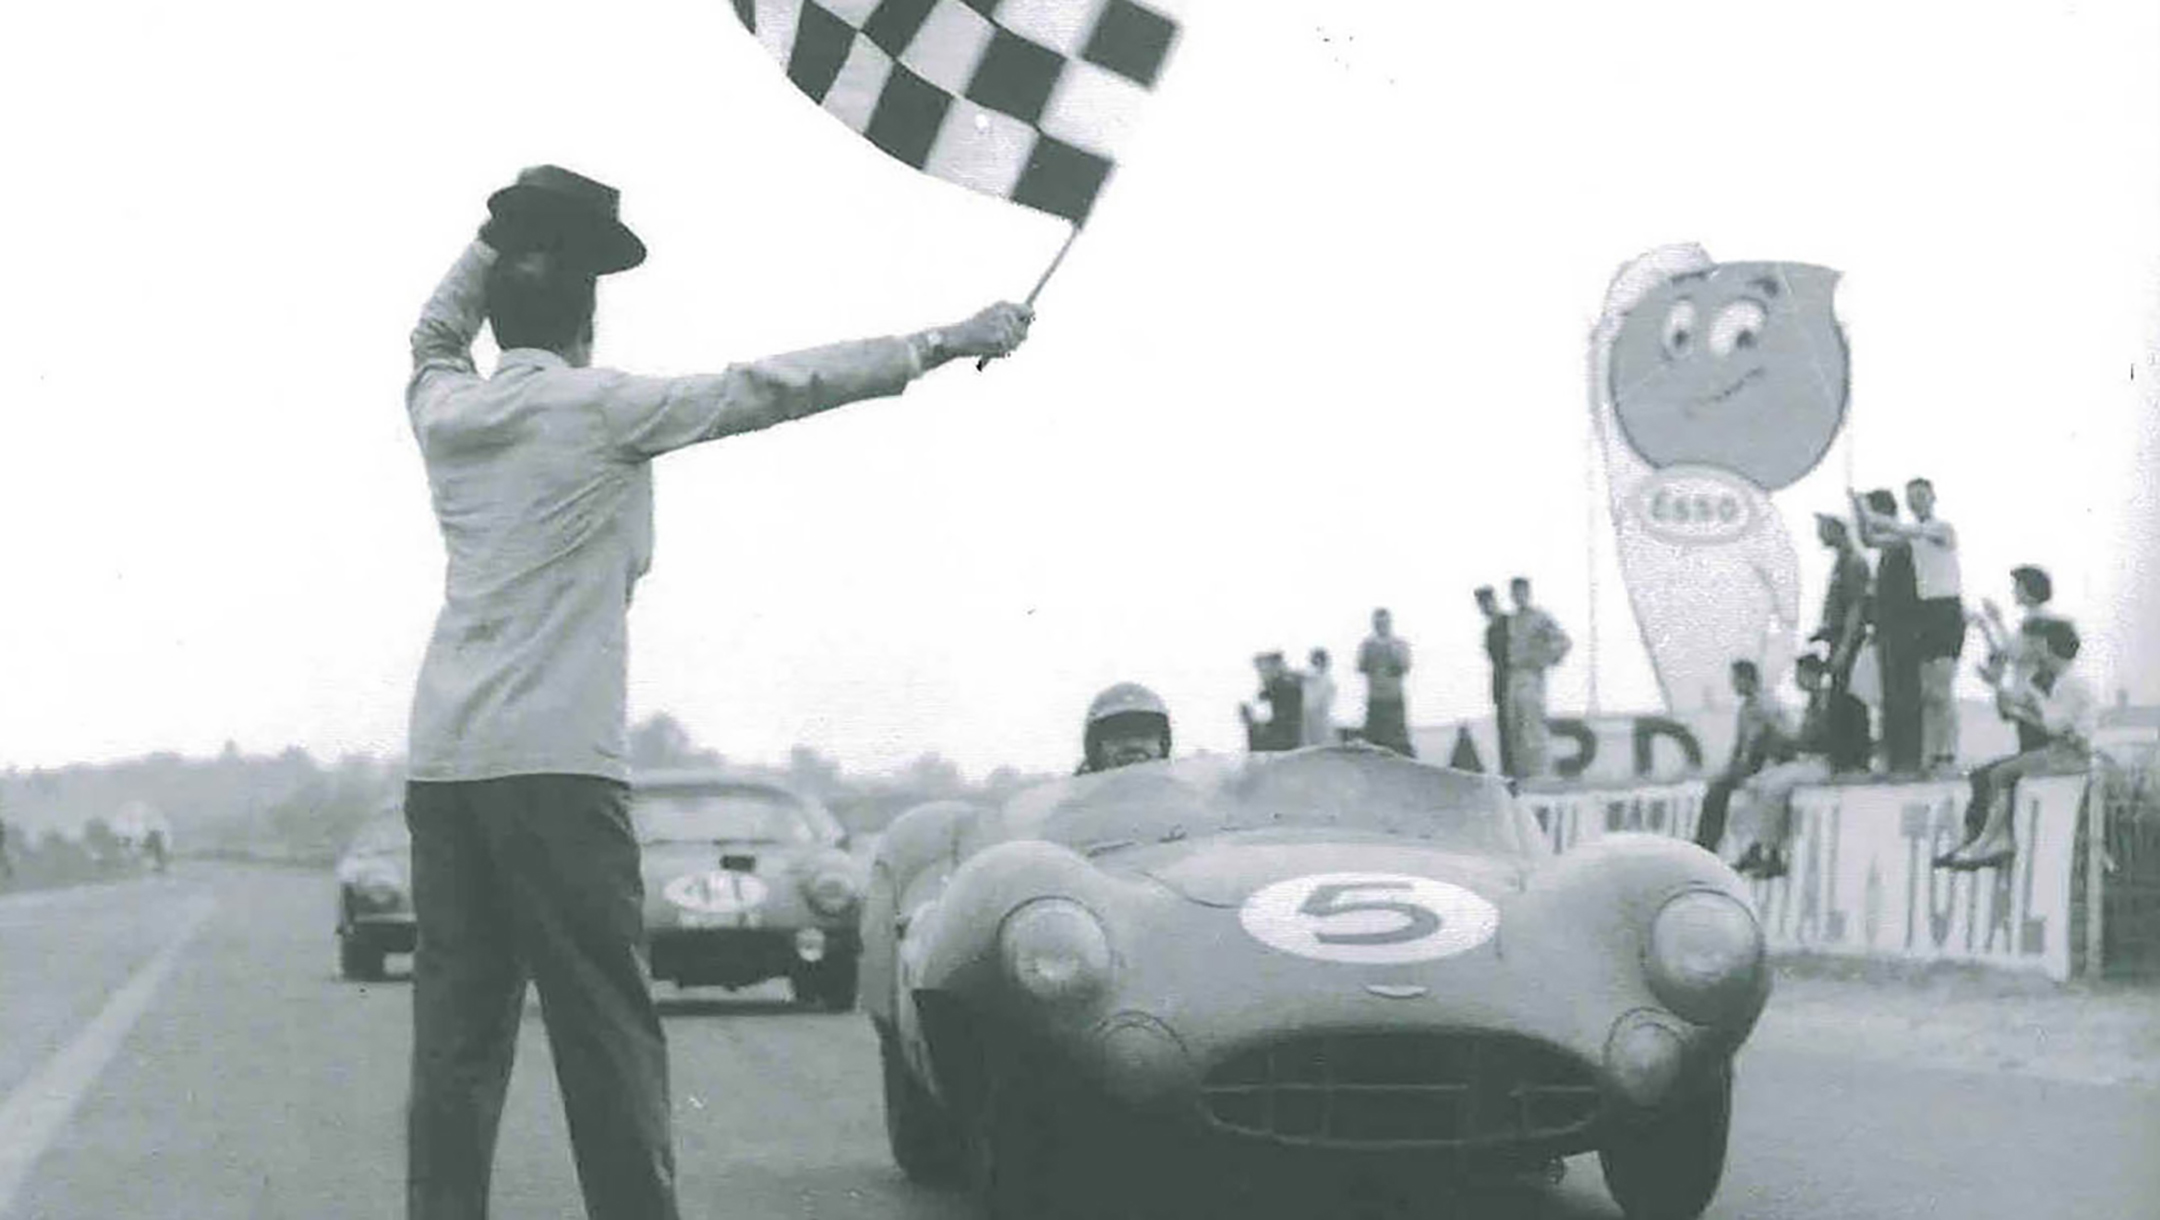 Carroll Shelby - Aston Martin - finish line Le Mans - 1959 - heritage photography - via Shelby America